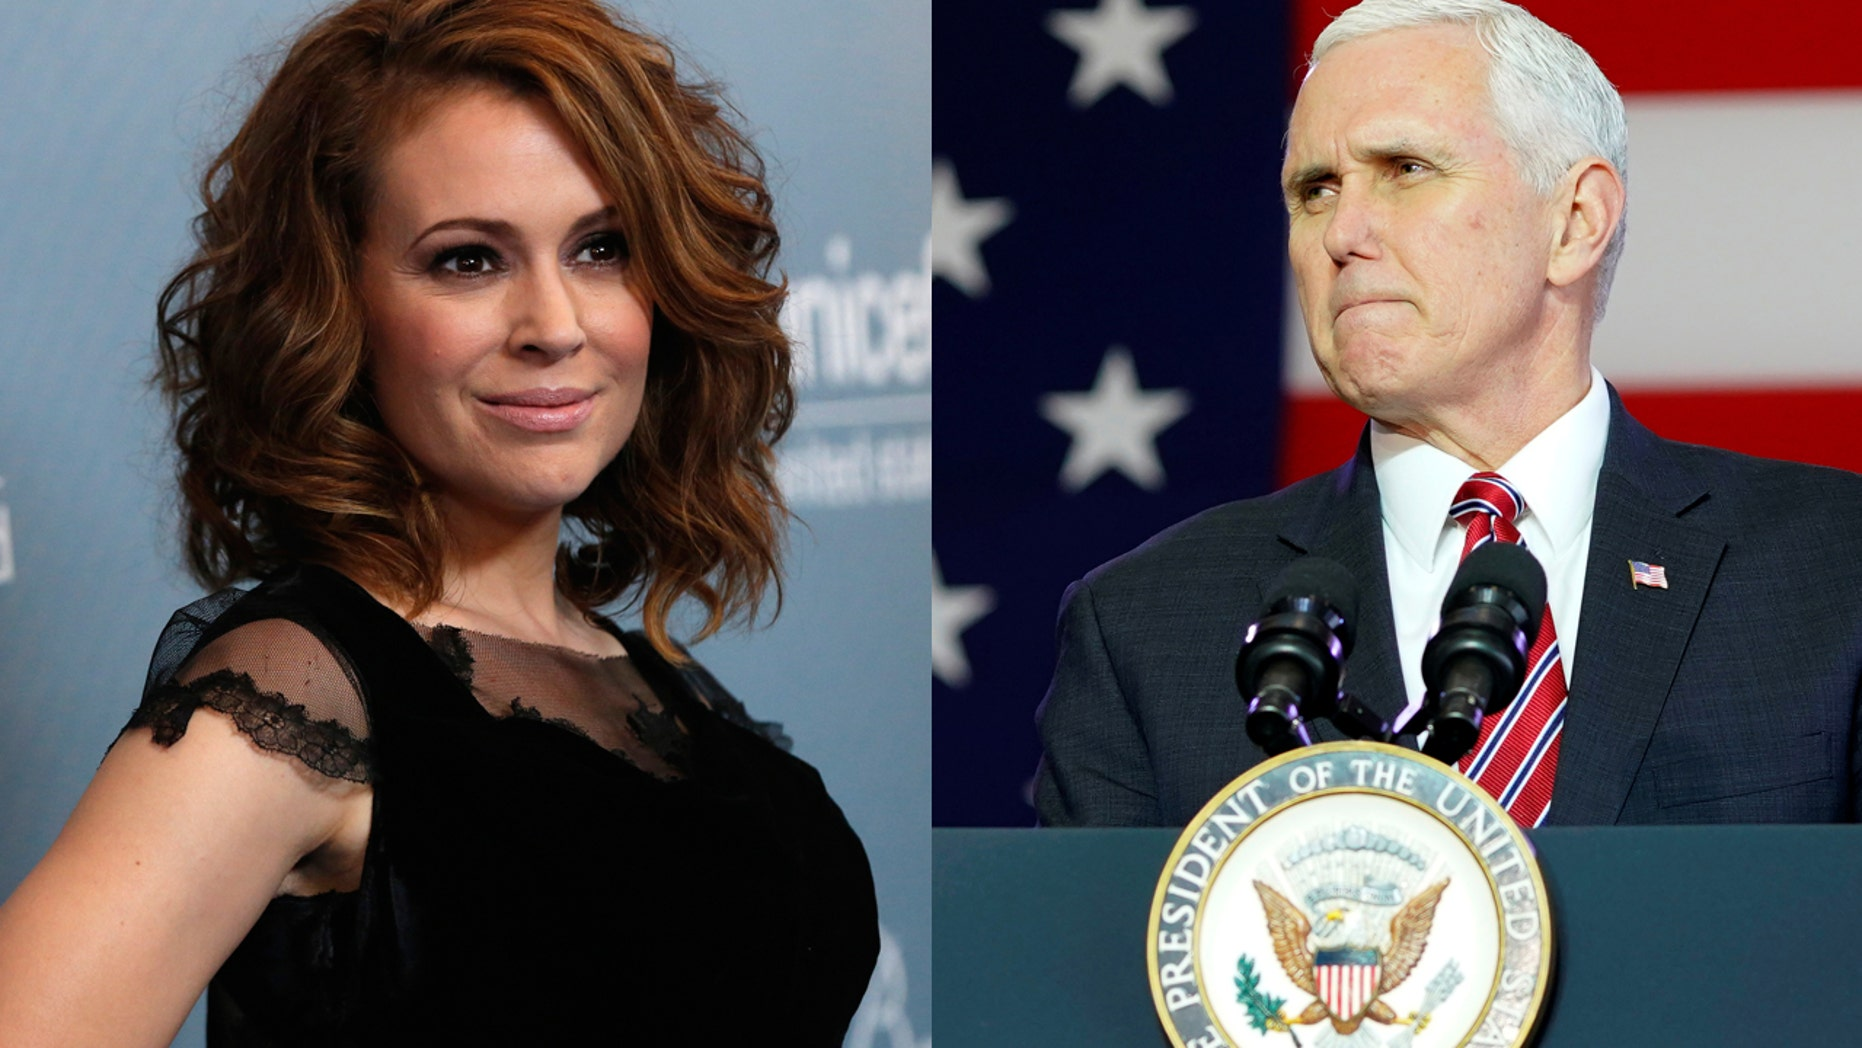 Actress Alyssa Milano demands that Vice President Mike Pence step down from speaking at the upcoming NRA conference.